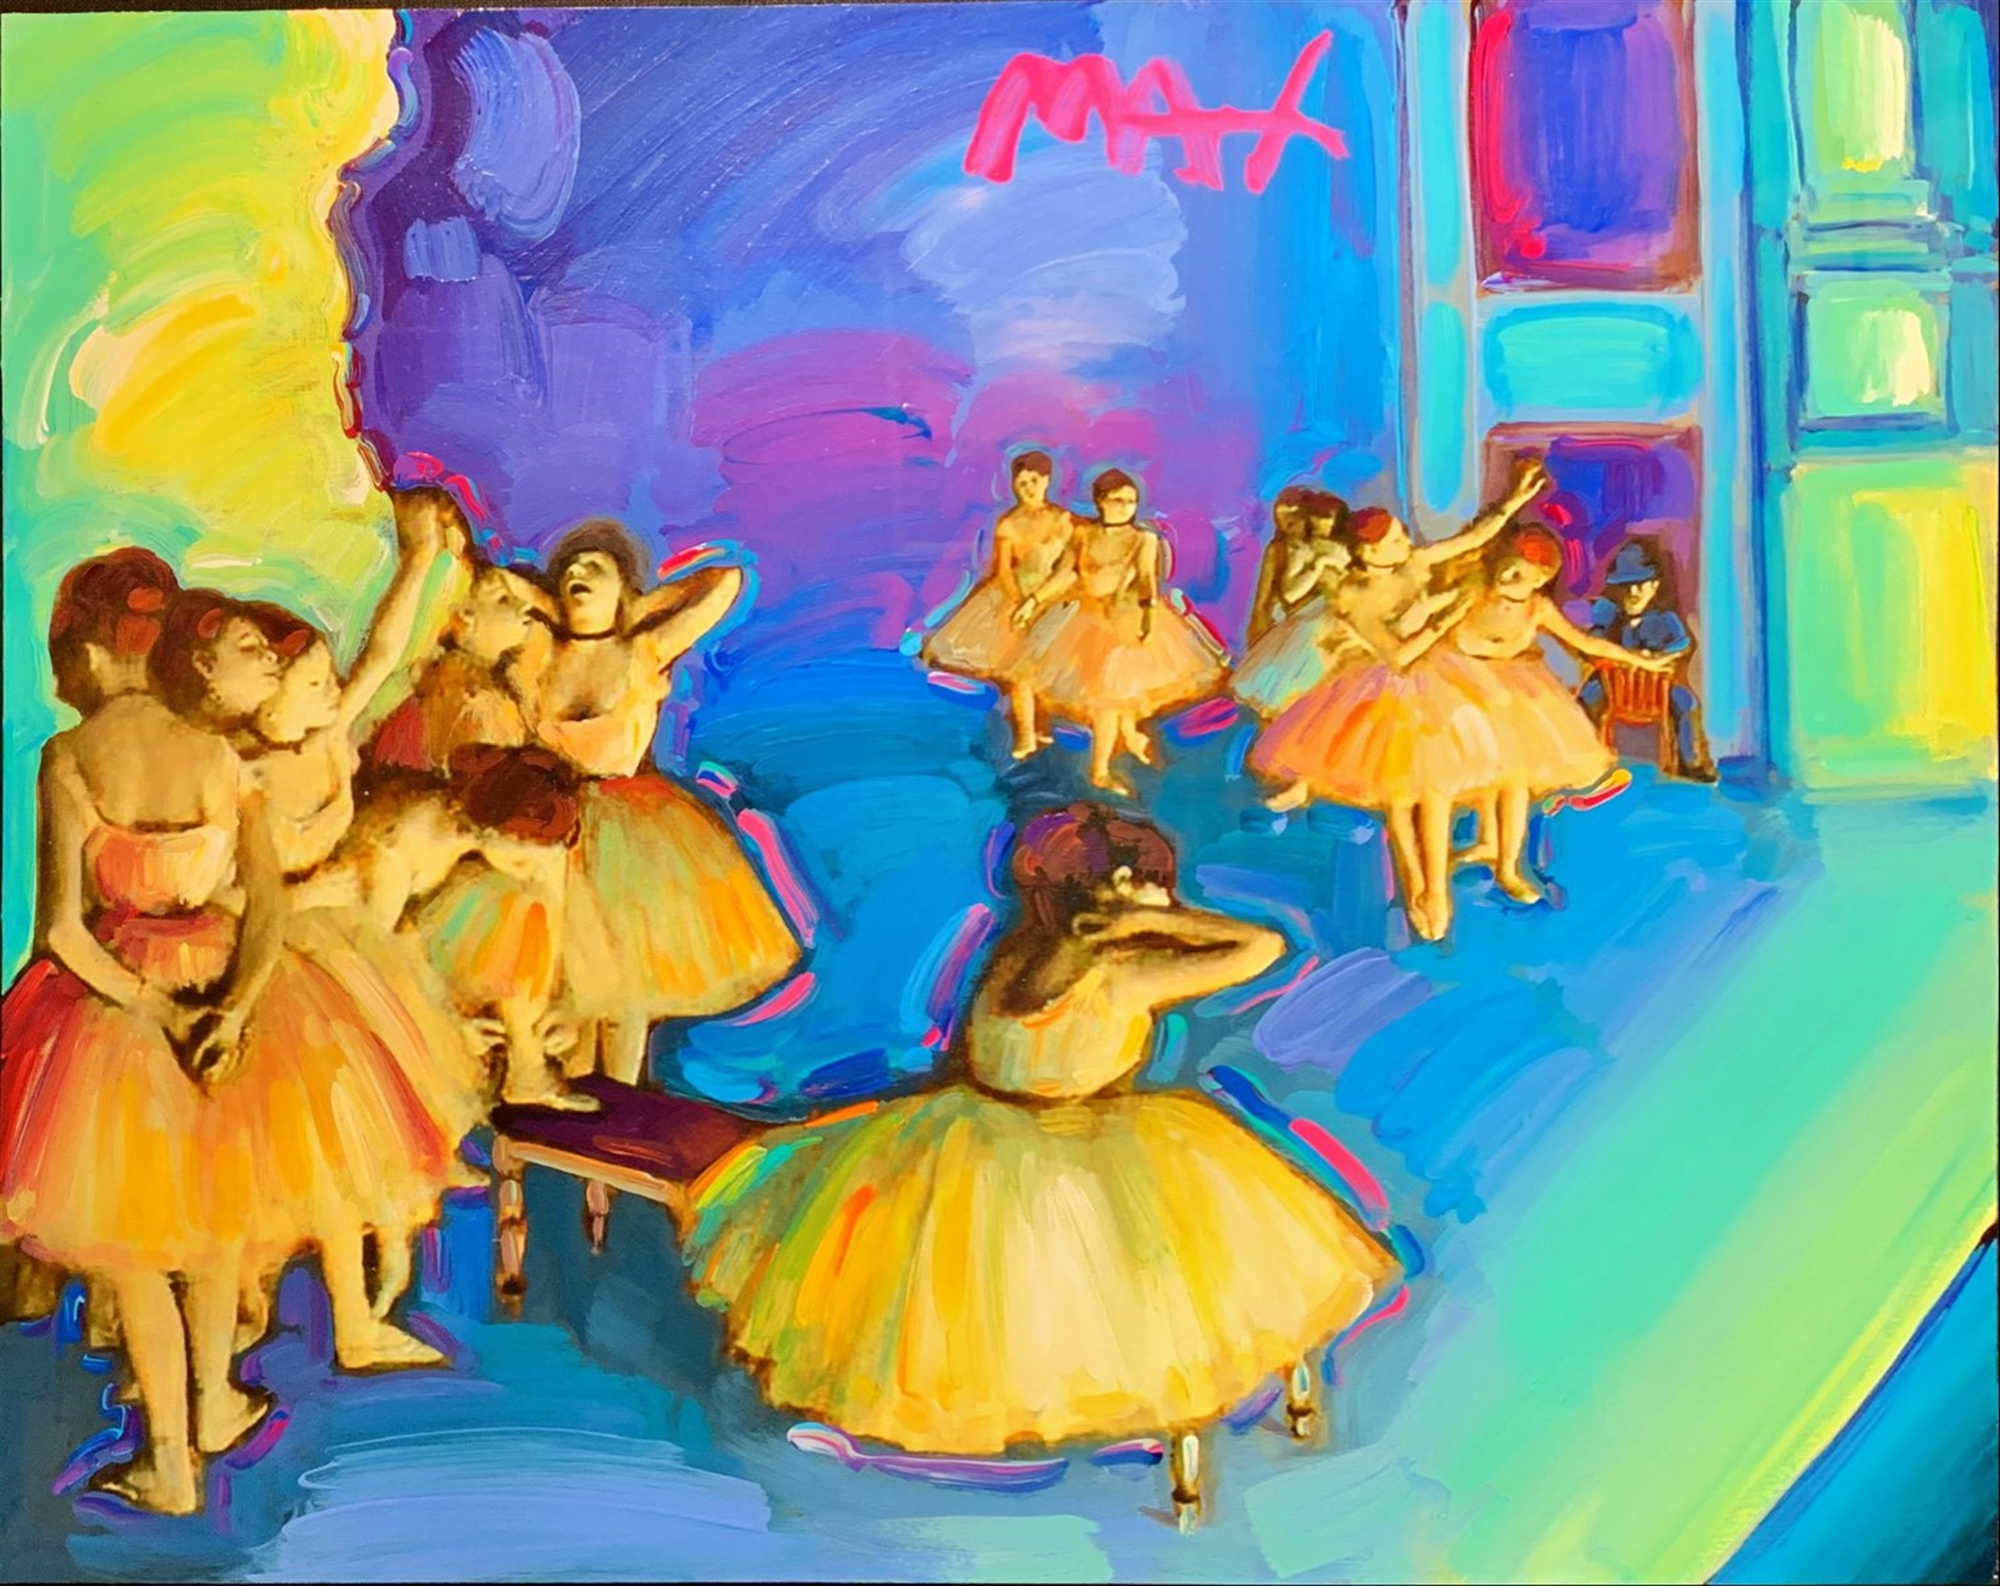 Homage to Degas: Dance Ballet Rehearsal by Peter Max